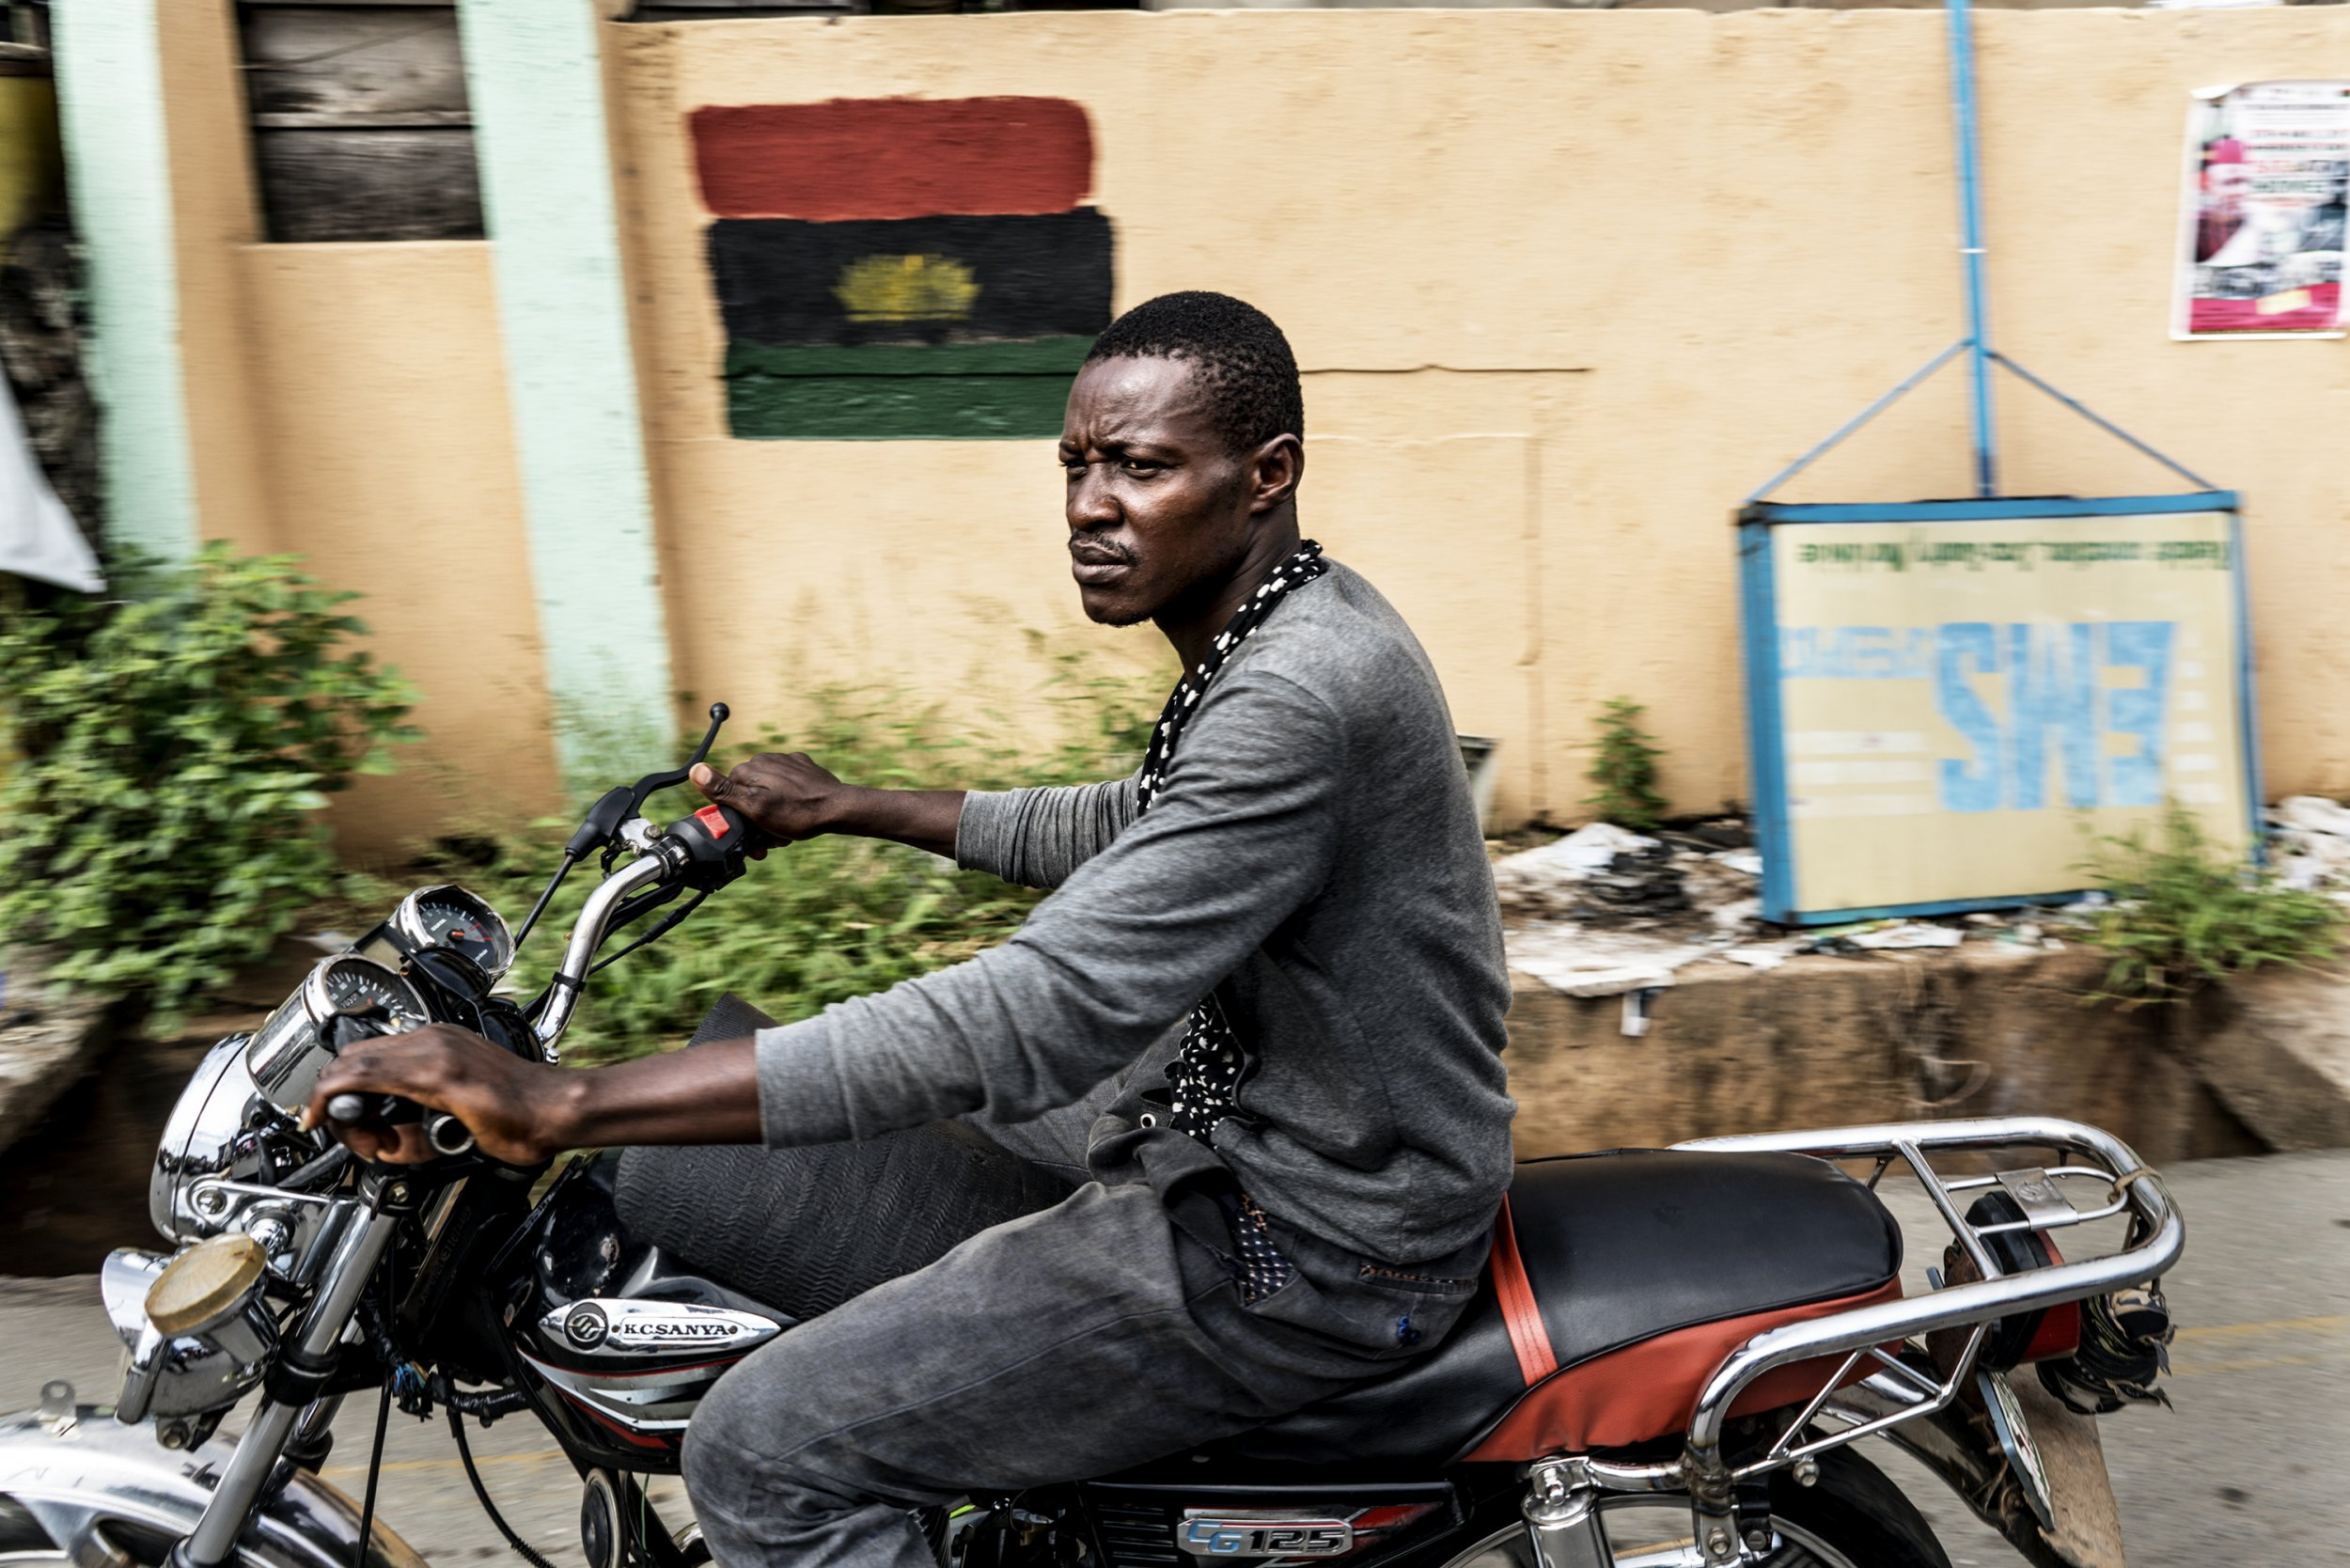 War in nigeria victory remains elusive 50 years on a man drives a motorbike past a biafran flag at the old market road in onitsha nigeria during a shutdown in commemoration of the 50th anniversary of the thecheapjerseys Images